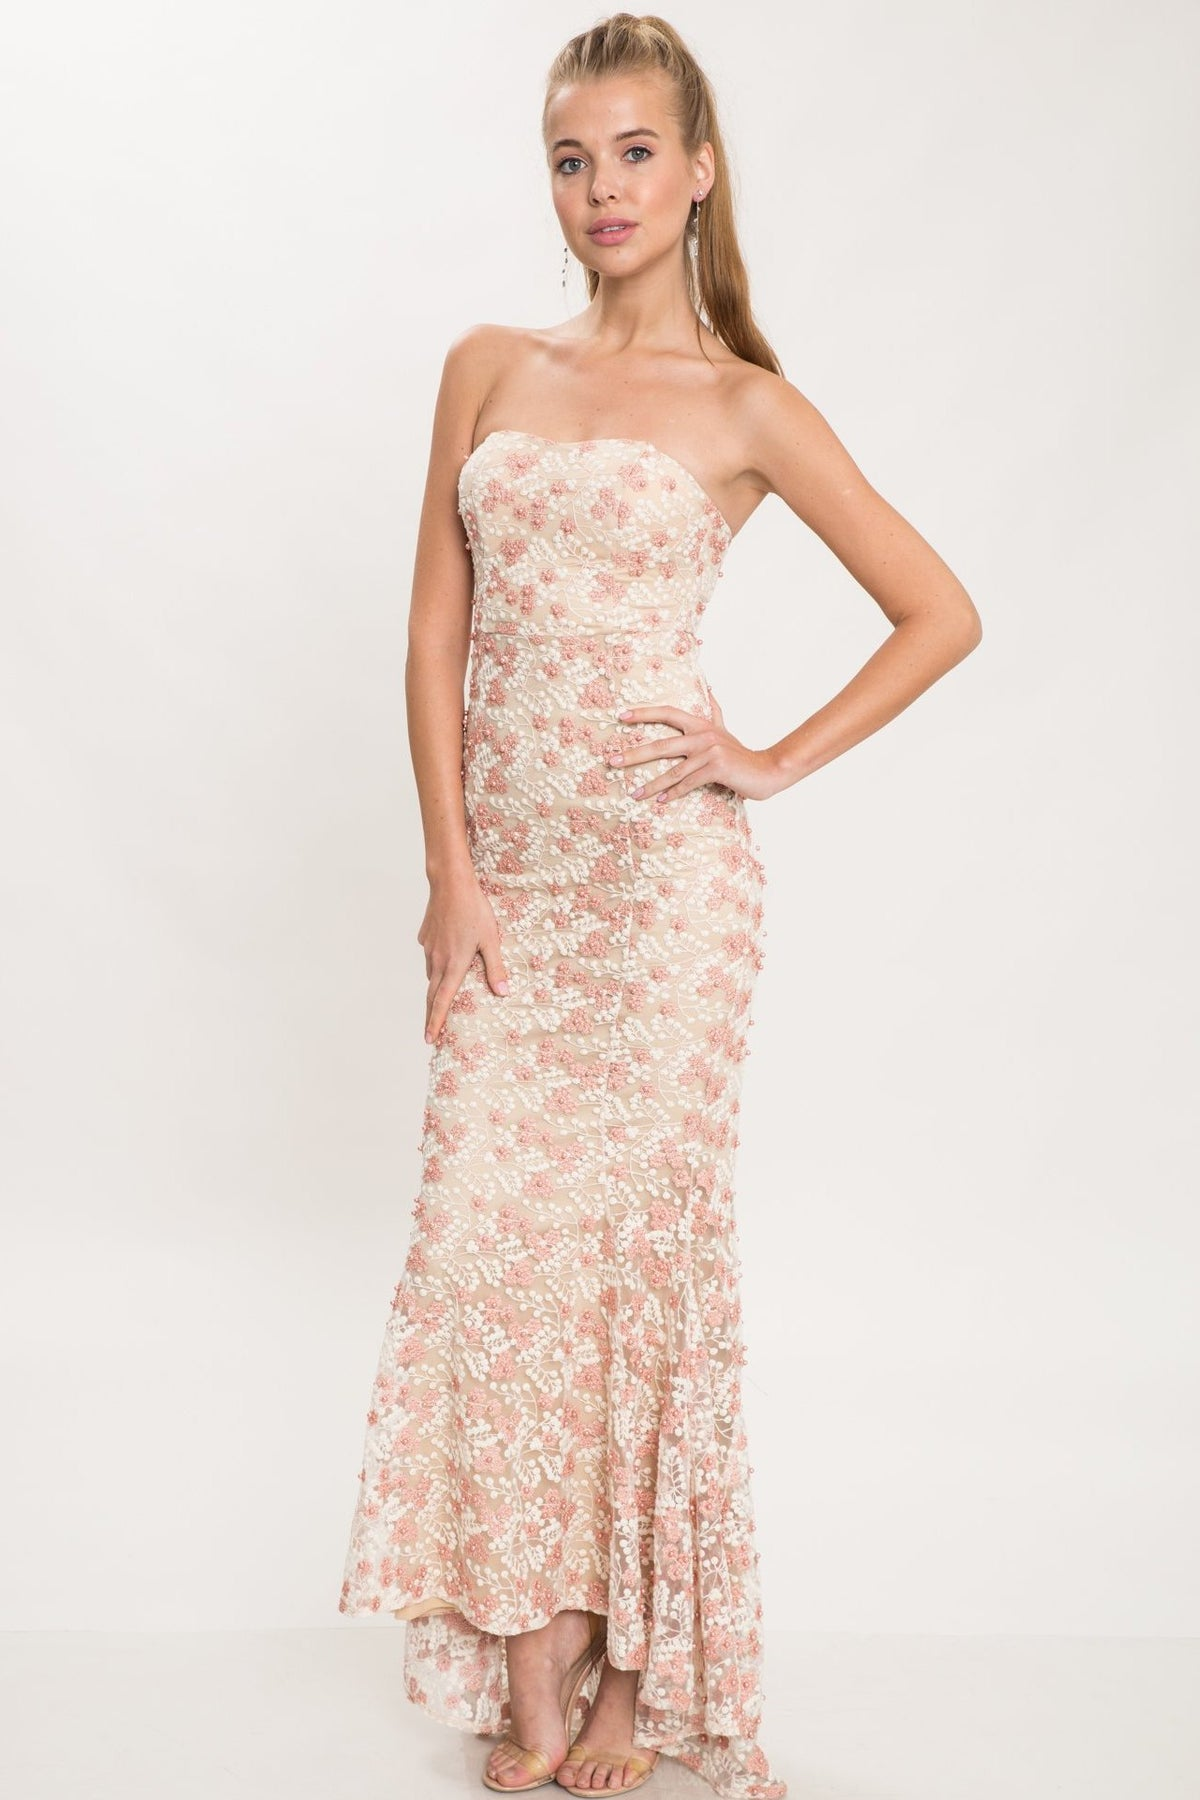 Bubble Gum Strapless Pearl Lace Gown - Geegeebae